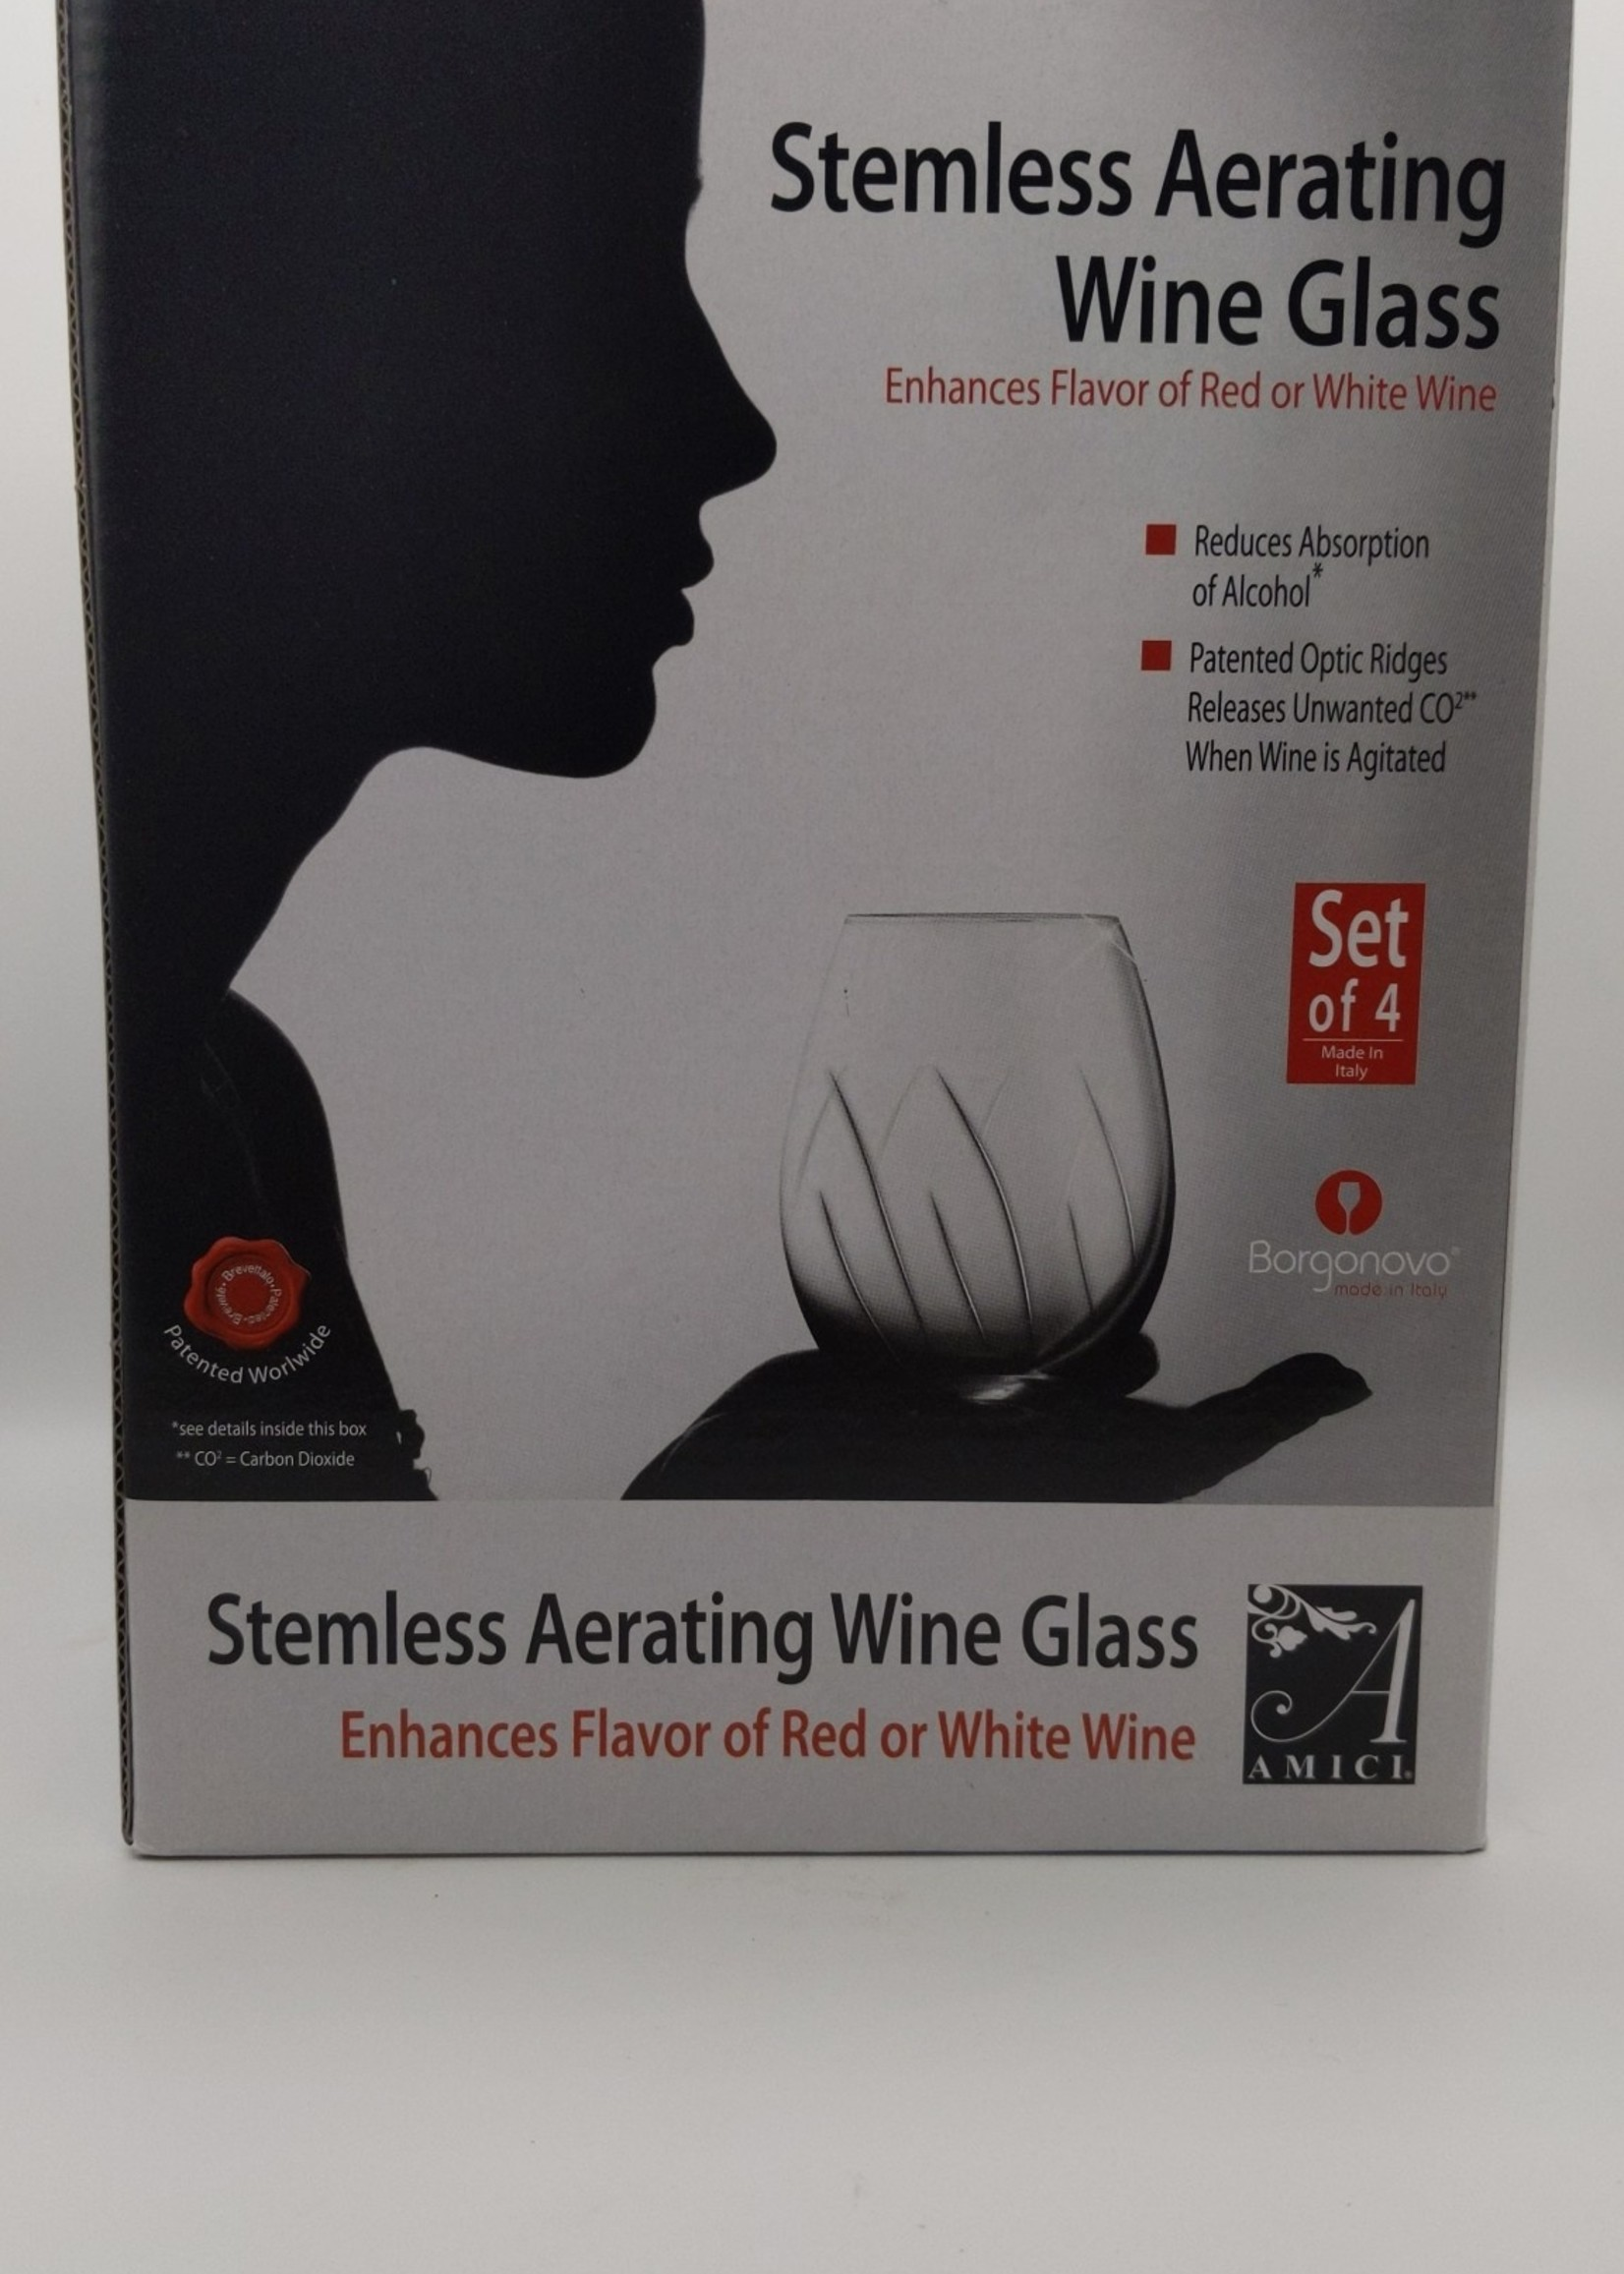 AMICI STEMLESS AERATING WINE GLASSES